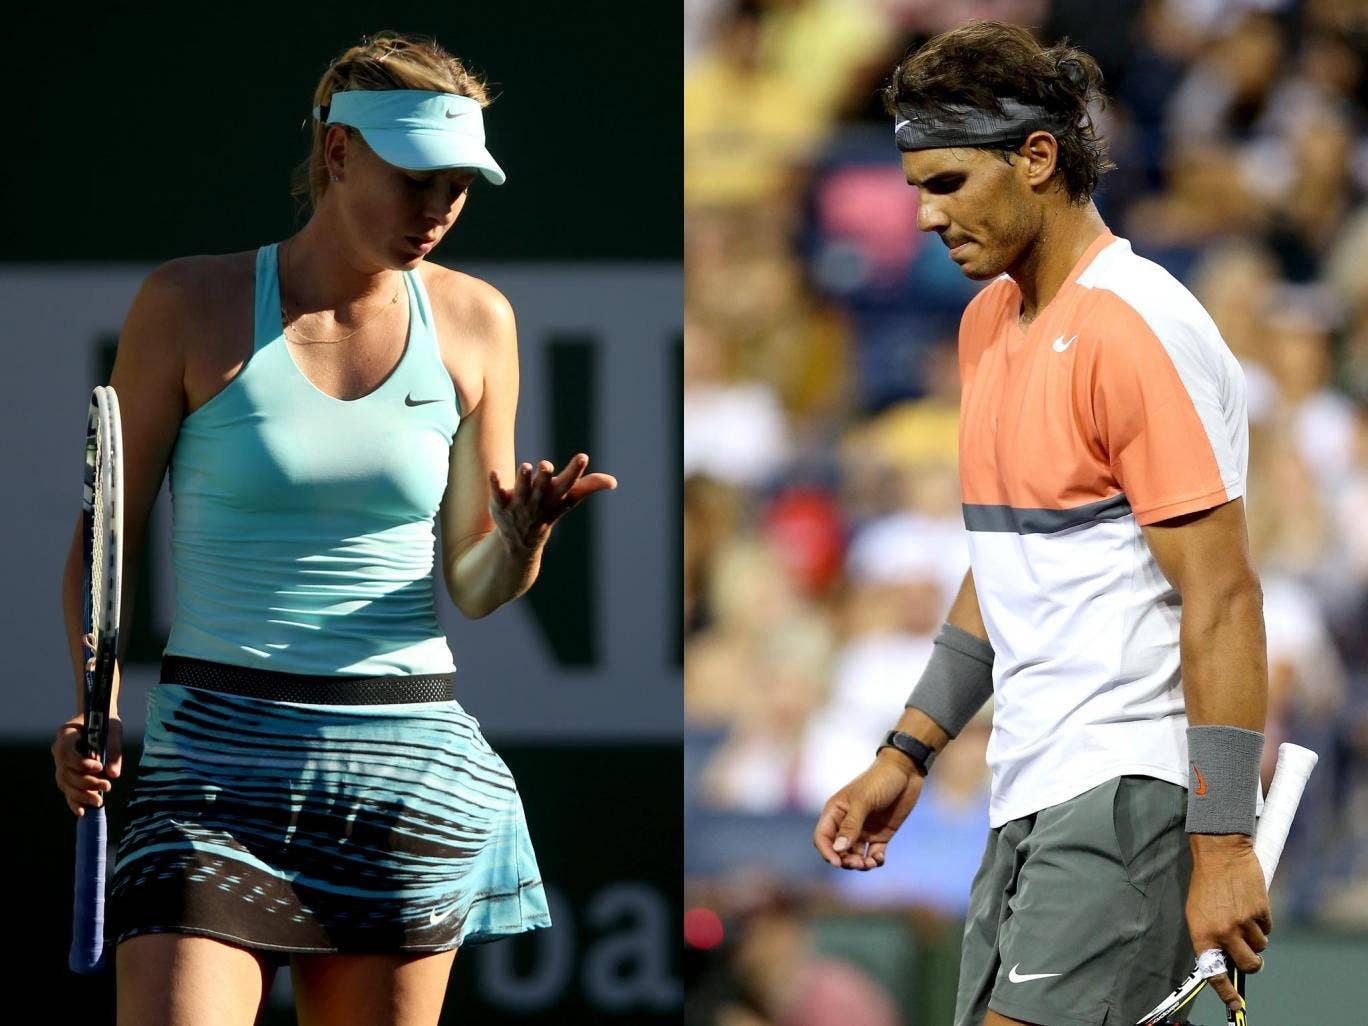 Maria Sharapova and Rafael Nadal both suffered early exits at the BNP Paribas Open at Indian Wells